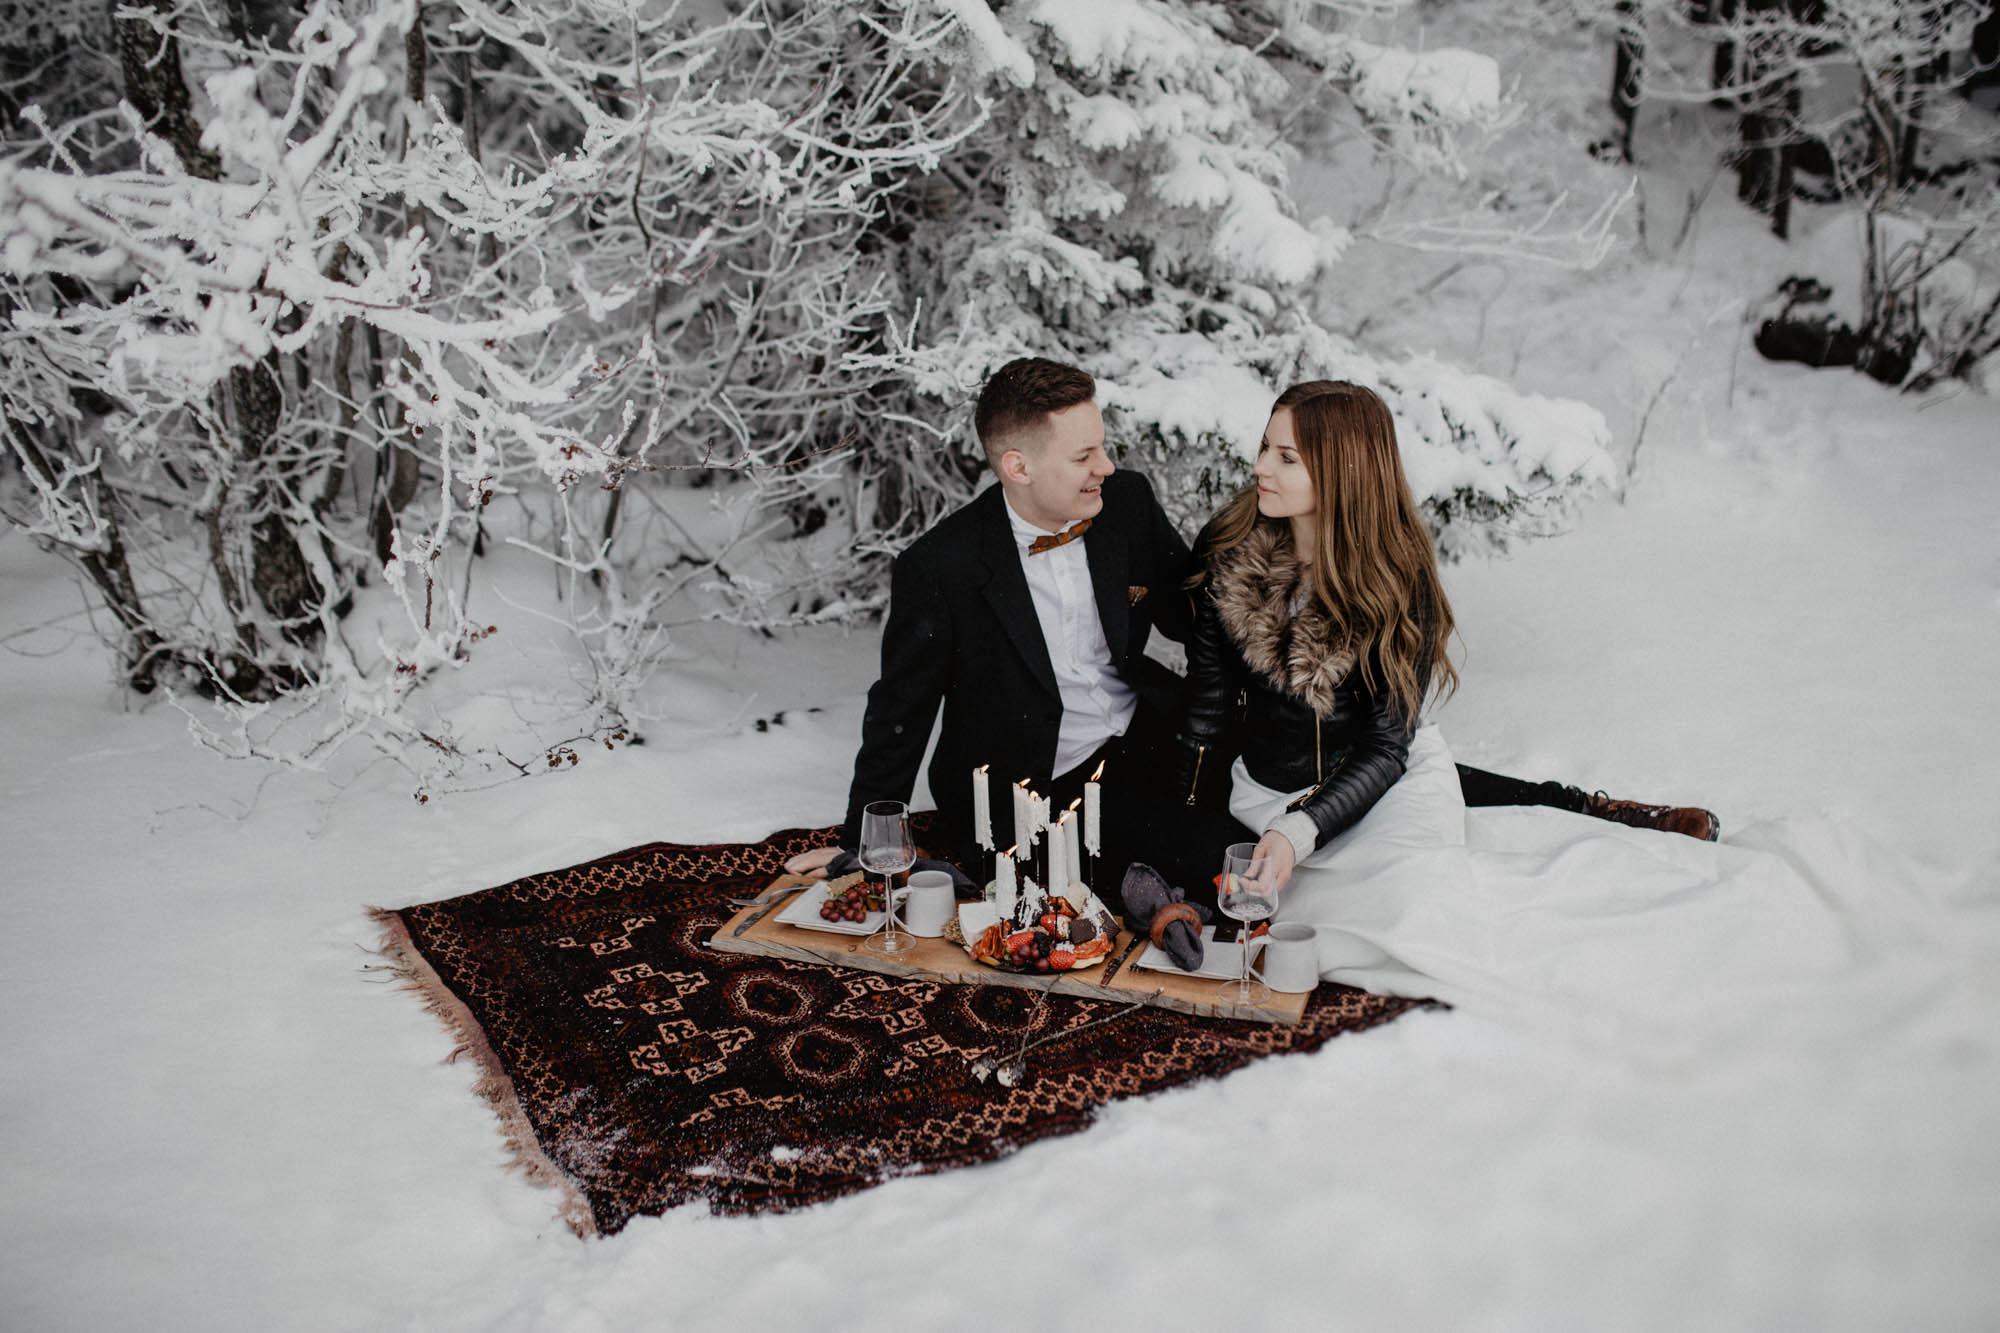 ashley_schulman_photography-winter_wedding_tampere-47.jpg